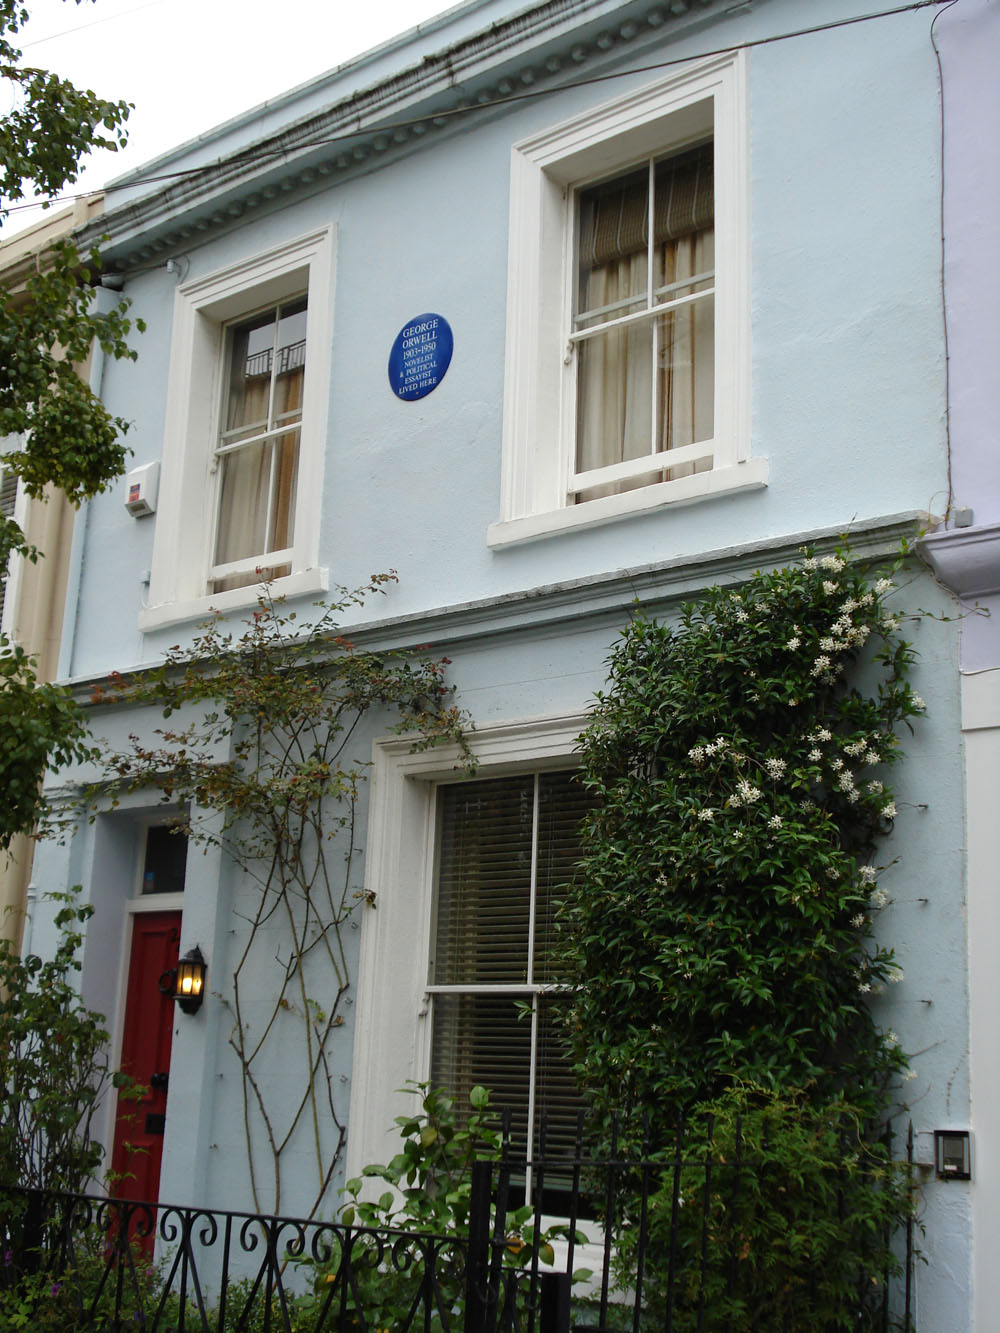 Casa de George Orwell a Notting Hill (Londres)